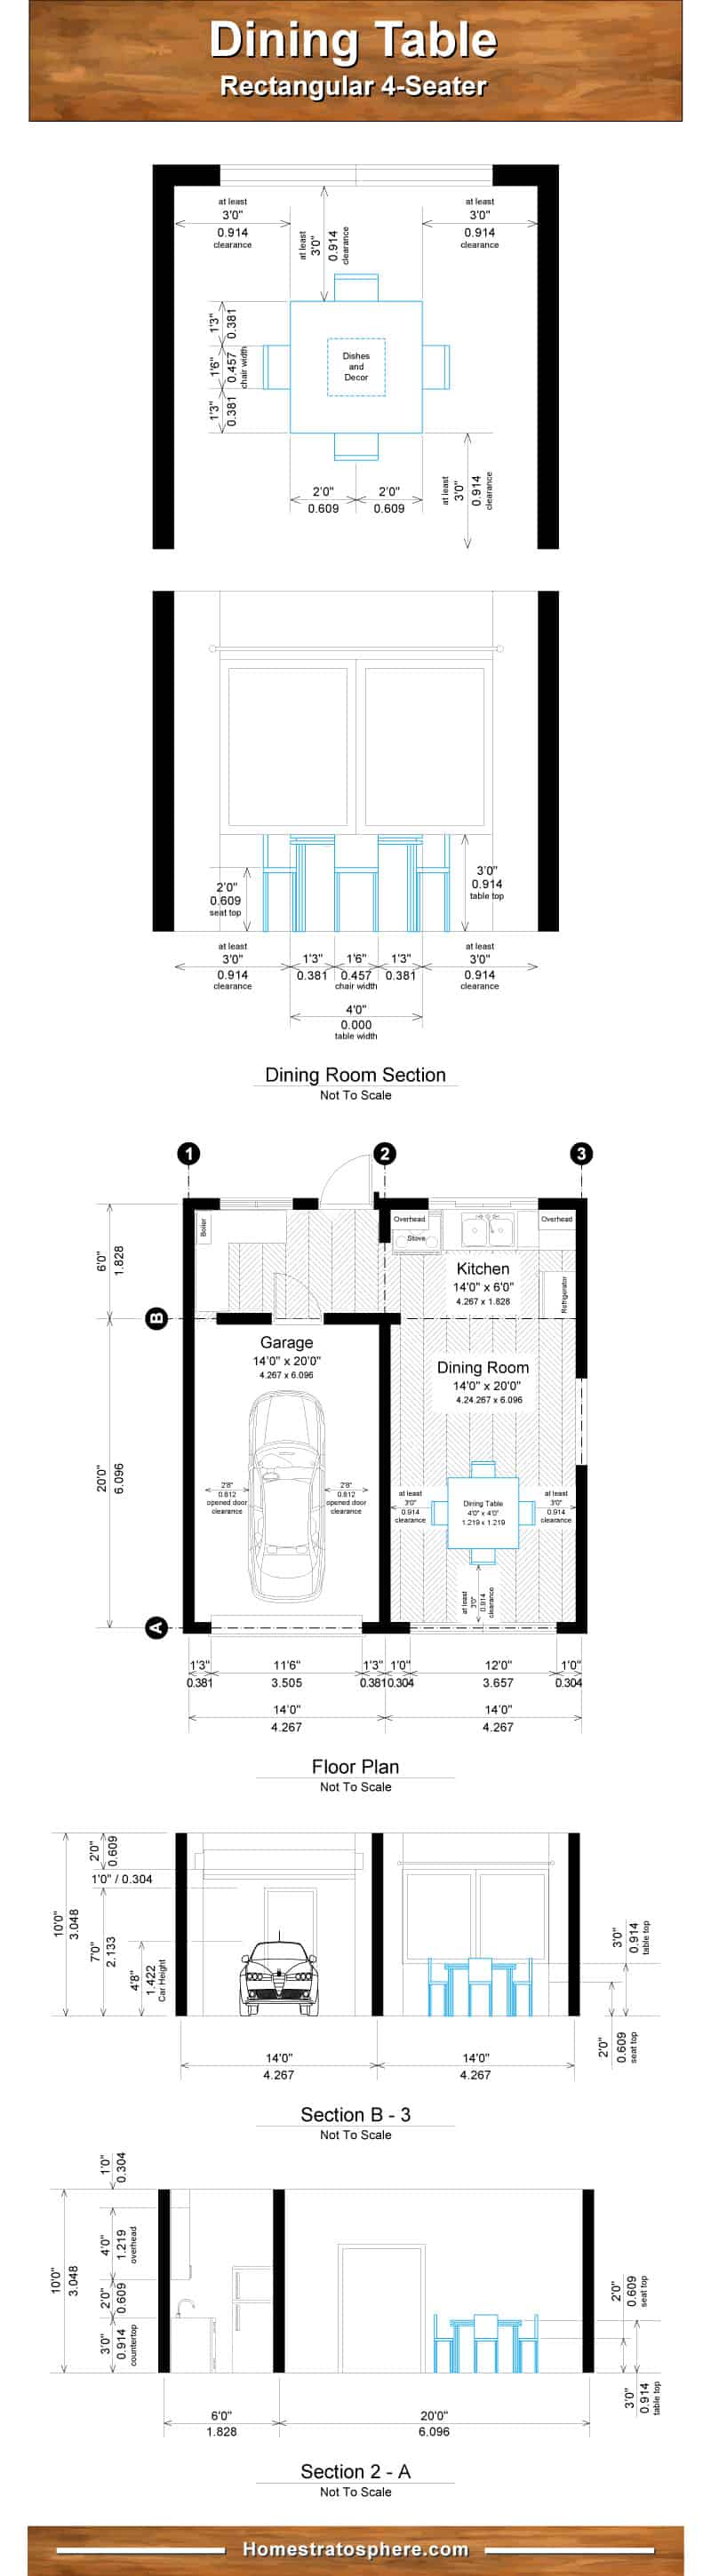 Prime Proper Dining Room Table Dimensions For 4 6 8 10 And 12 Caraccident5 Cool Chair Designs And Ideas Caraccident5Info